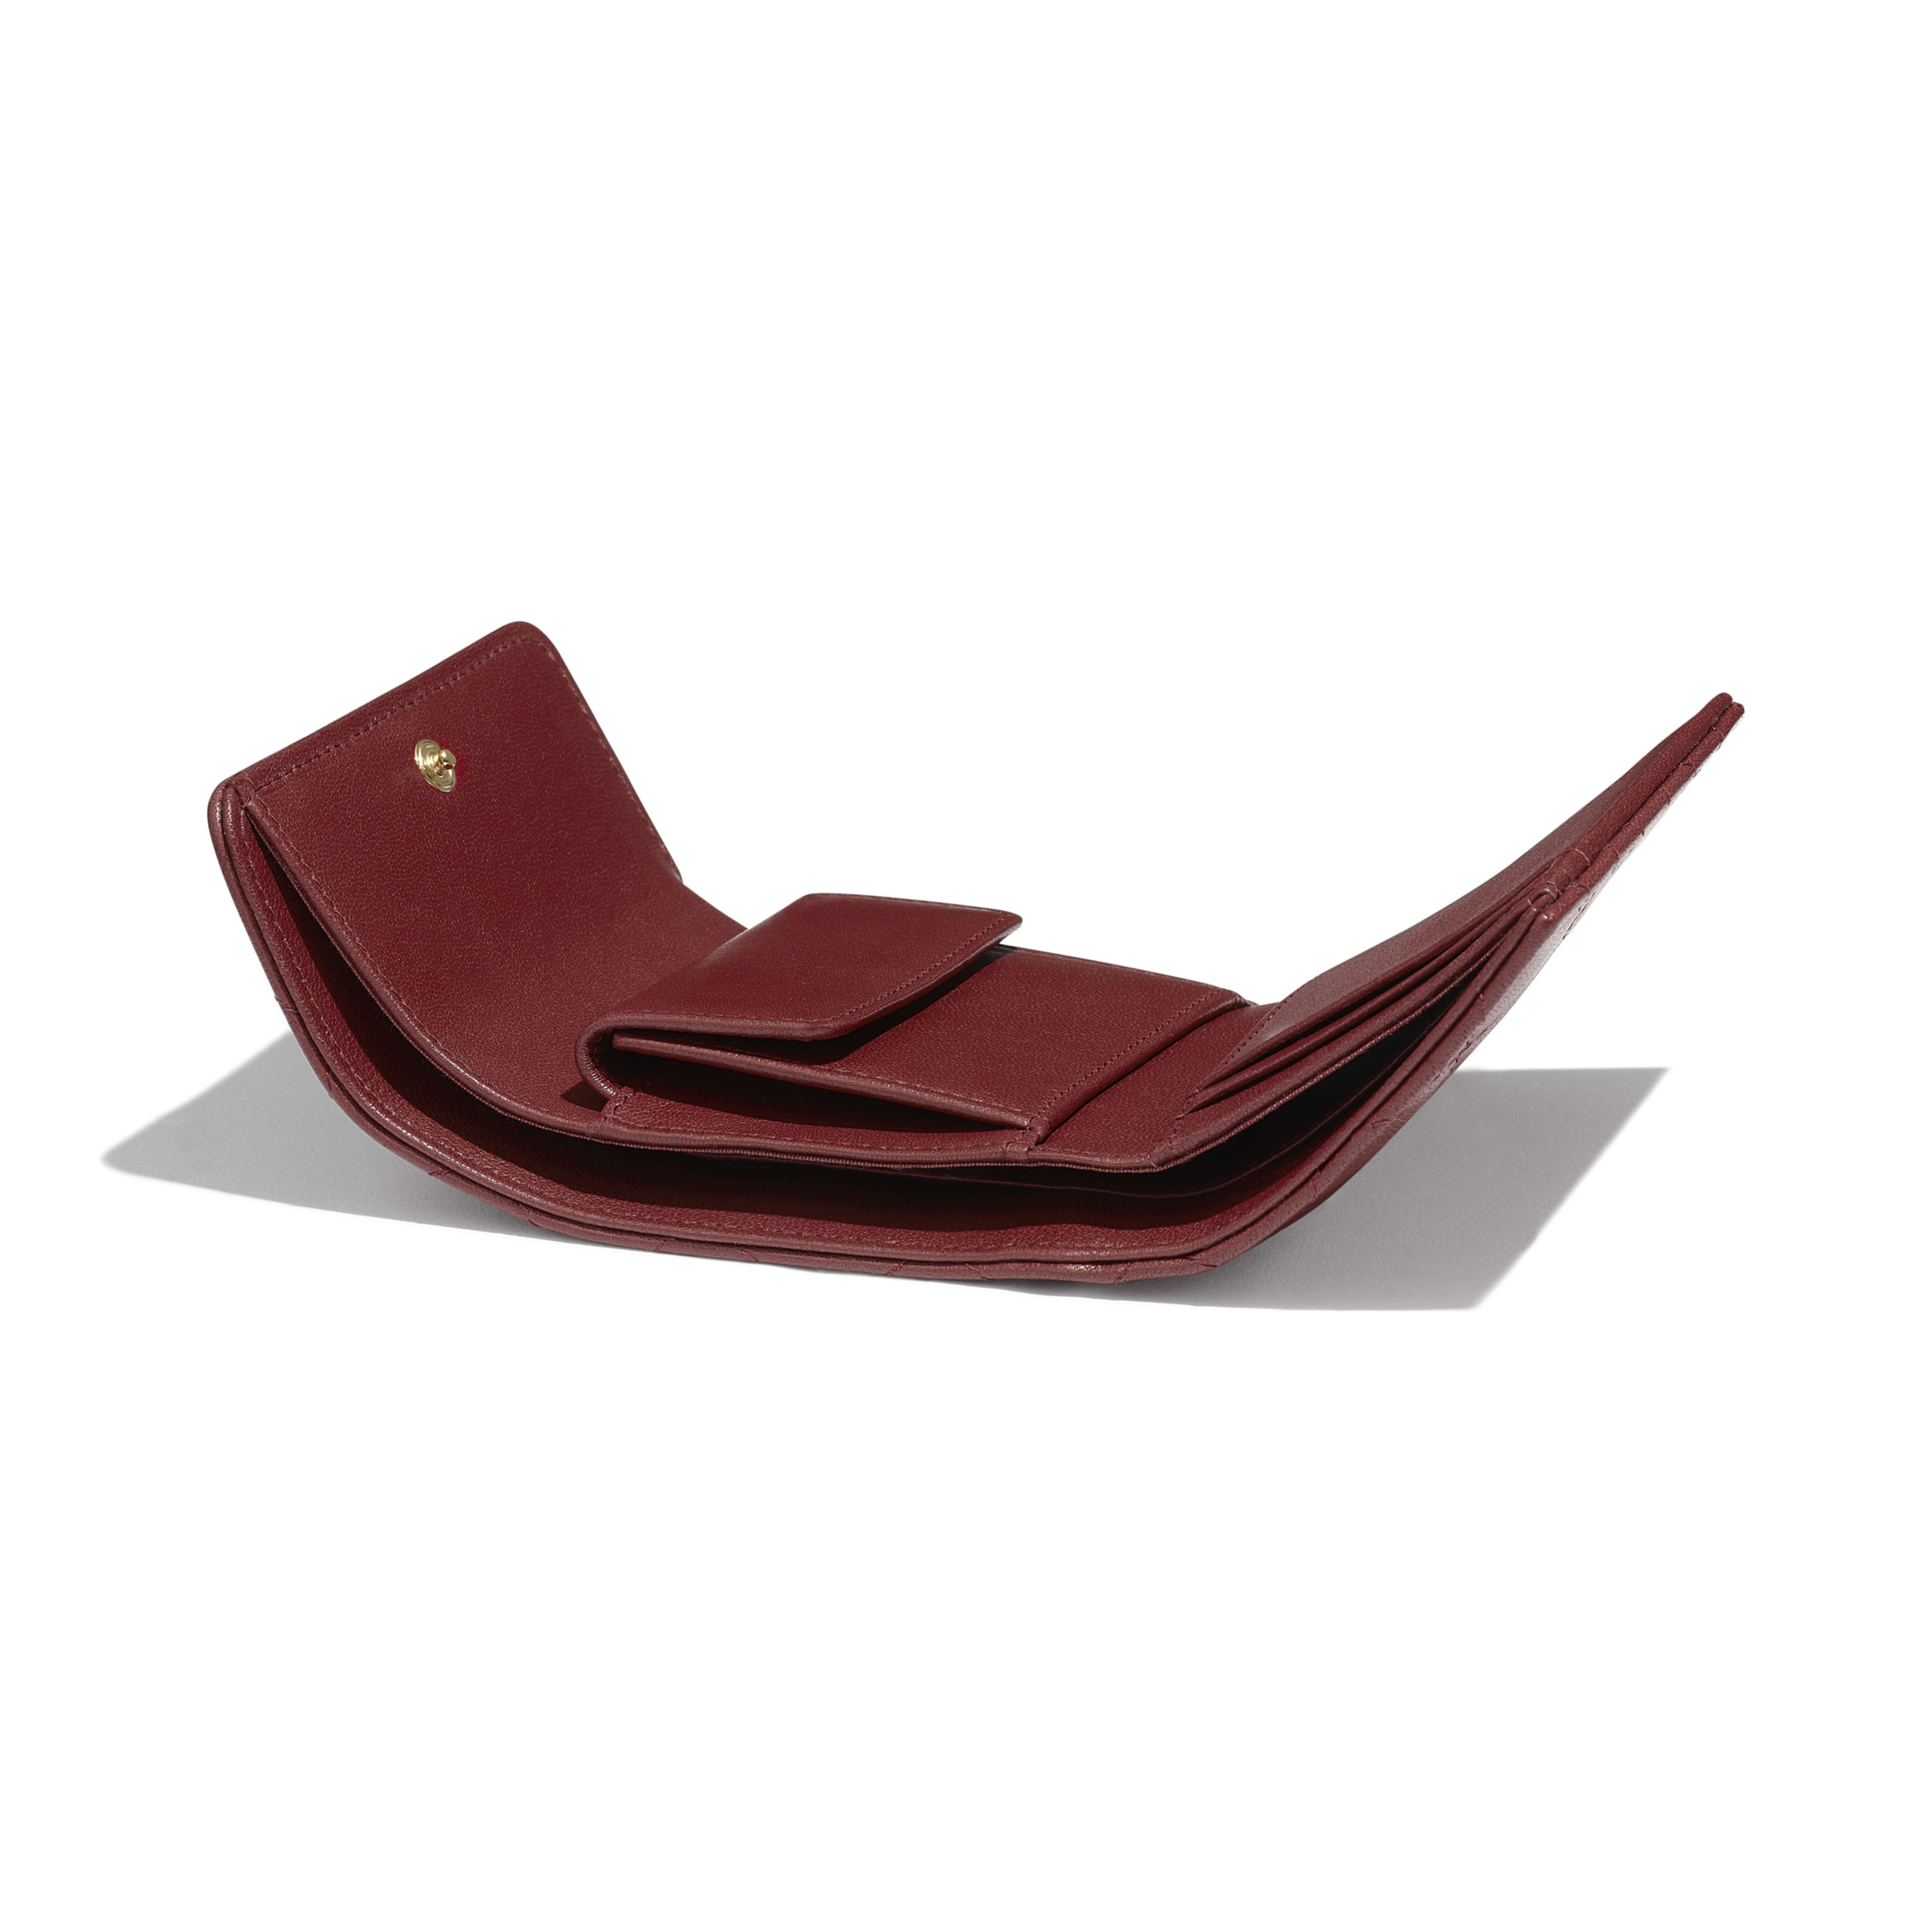 Small Flap Wallet - Burgundy - Lambskin - Extra view - see full sized version